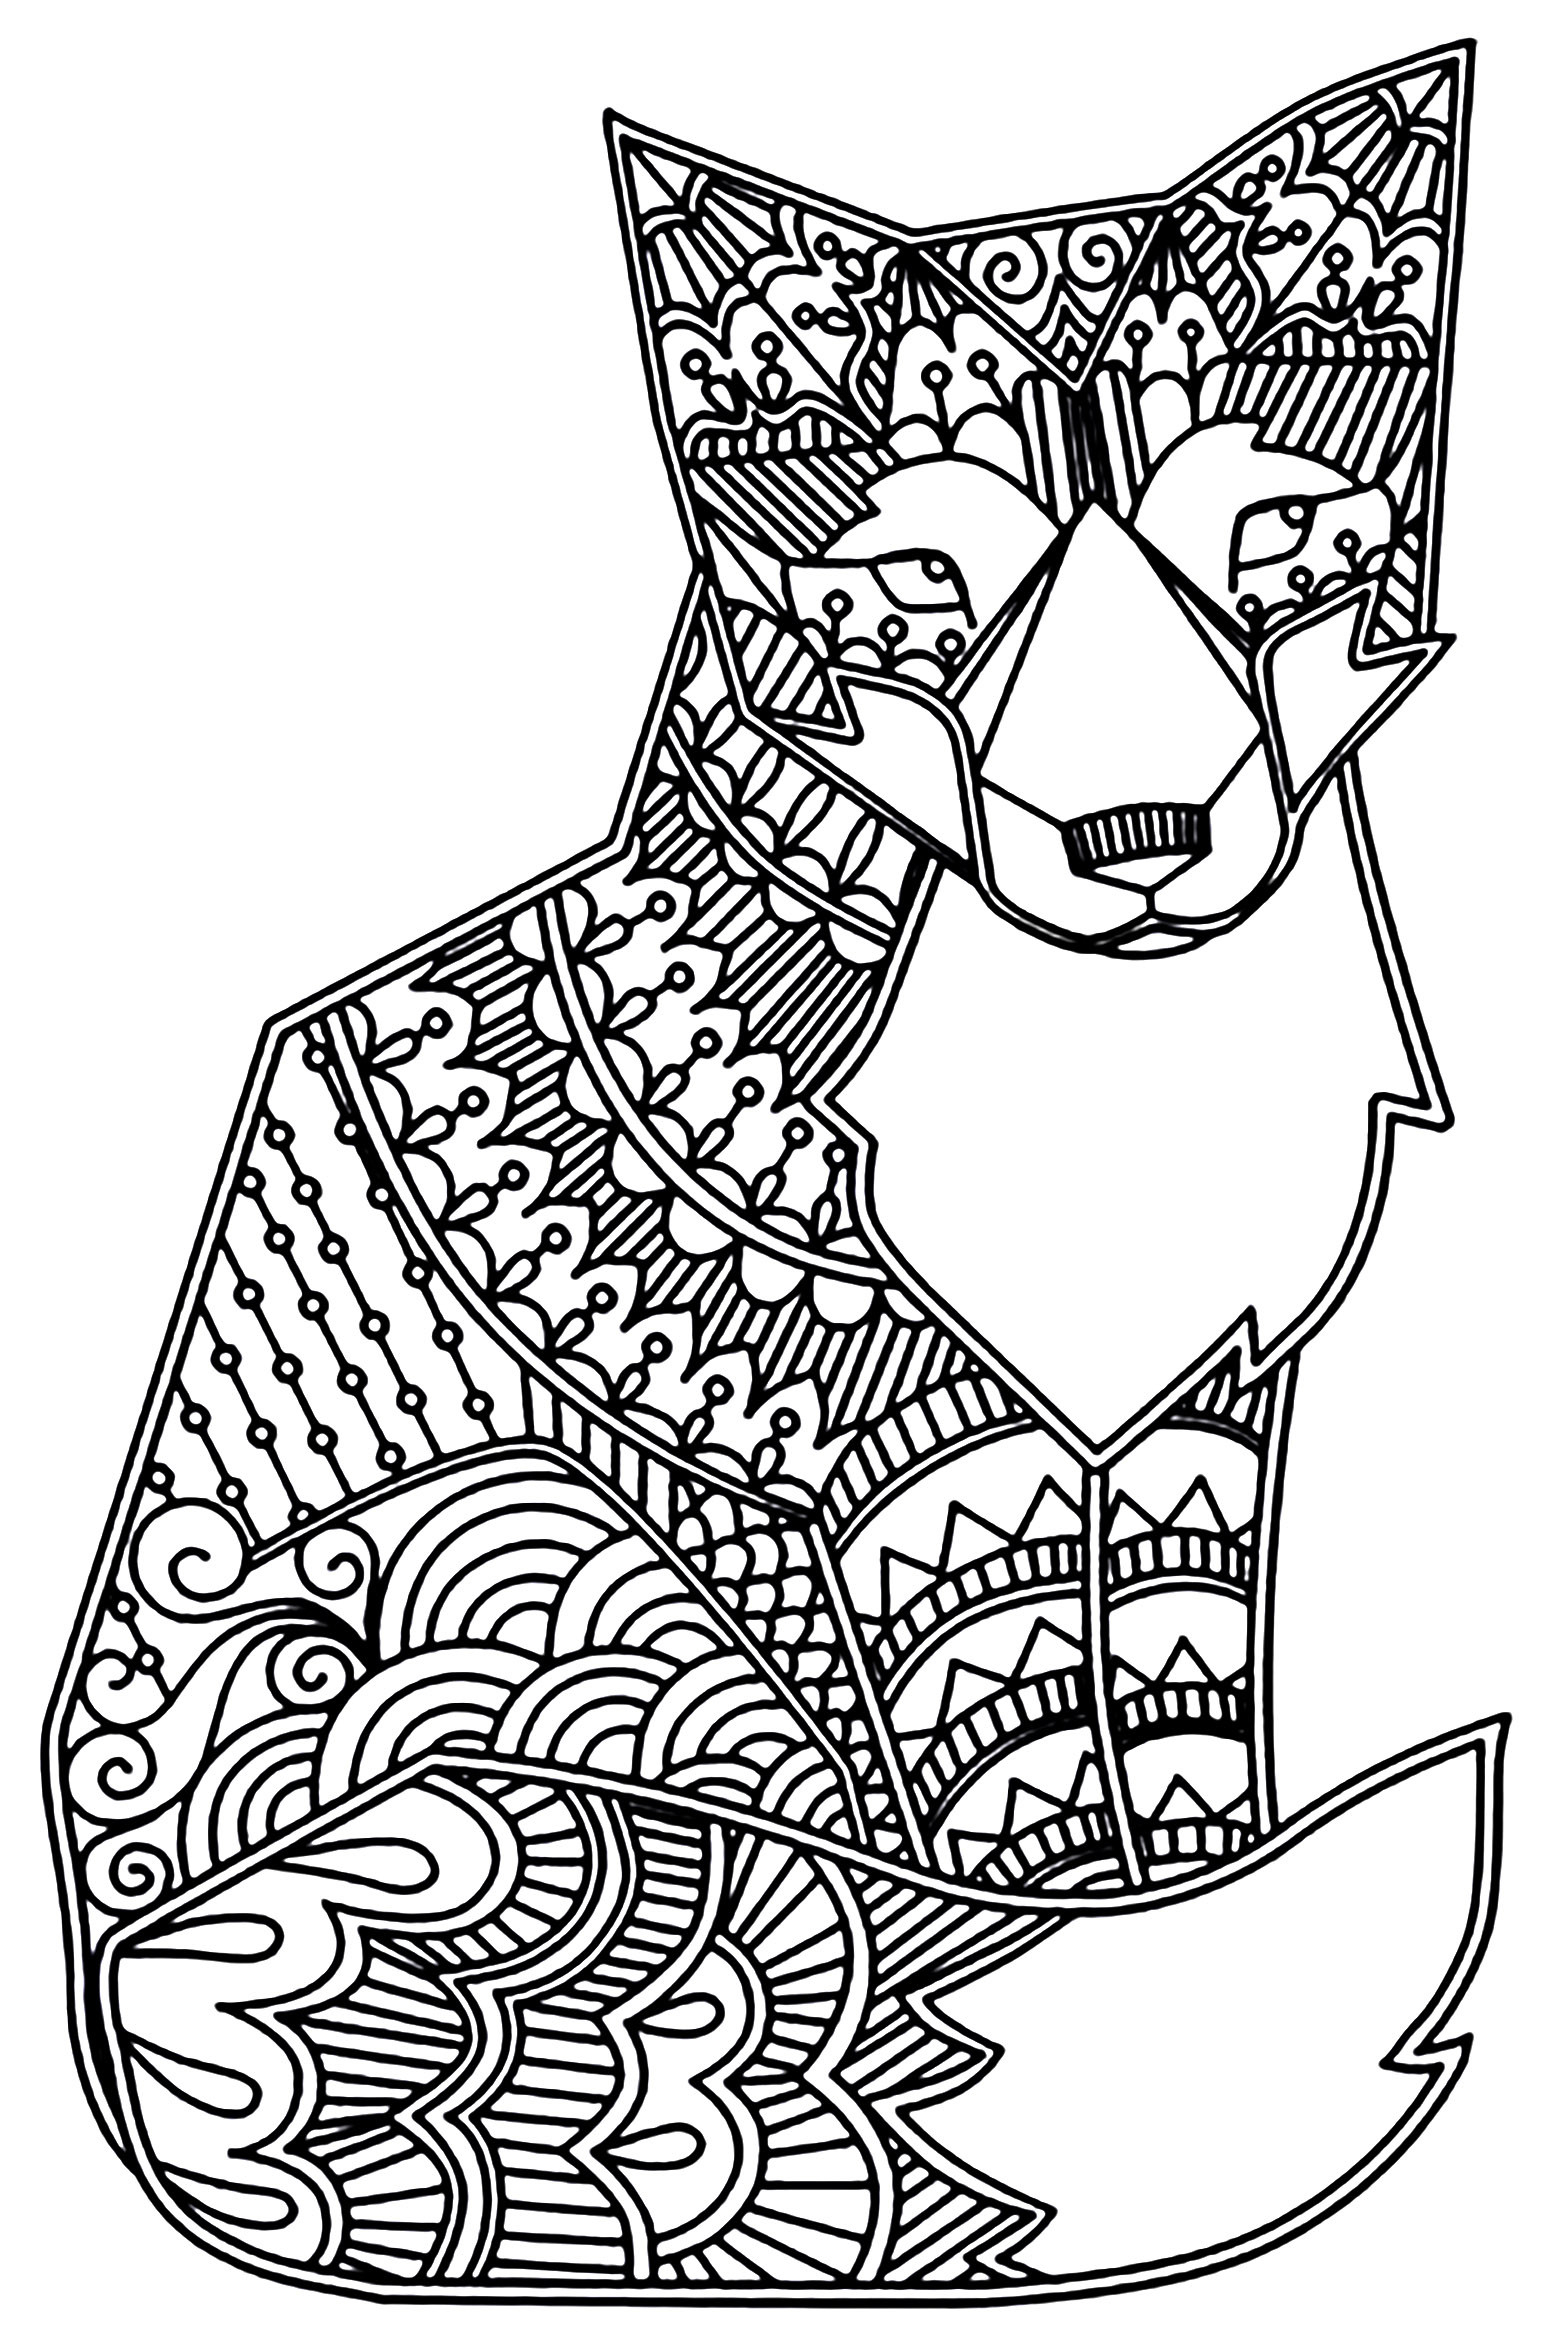 Realistic Fox Coloring Pages  Printable 7m - Free Download